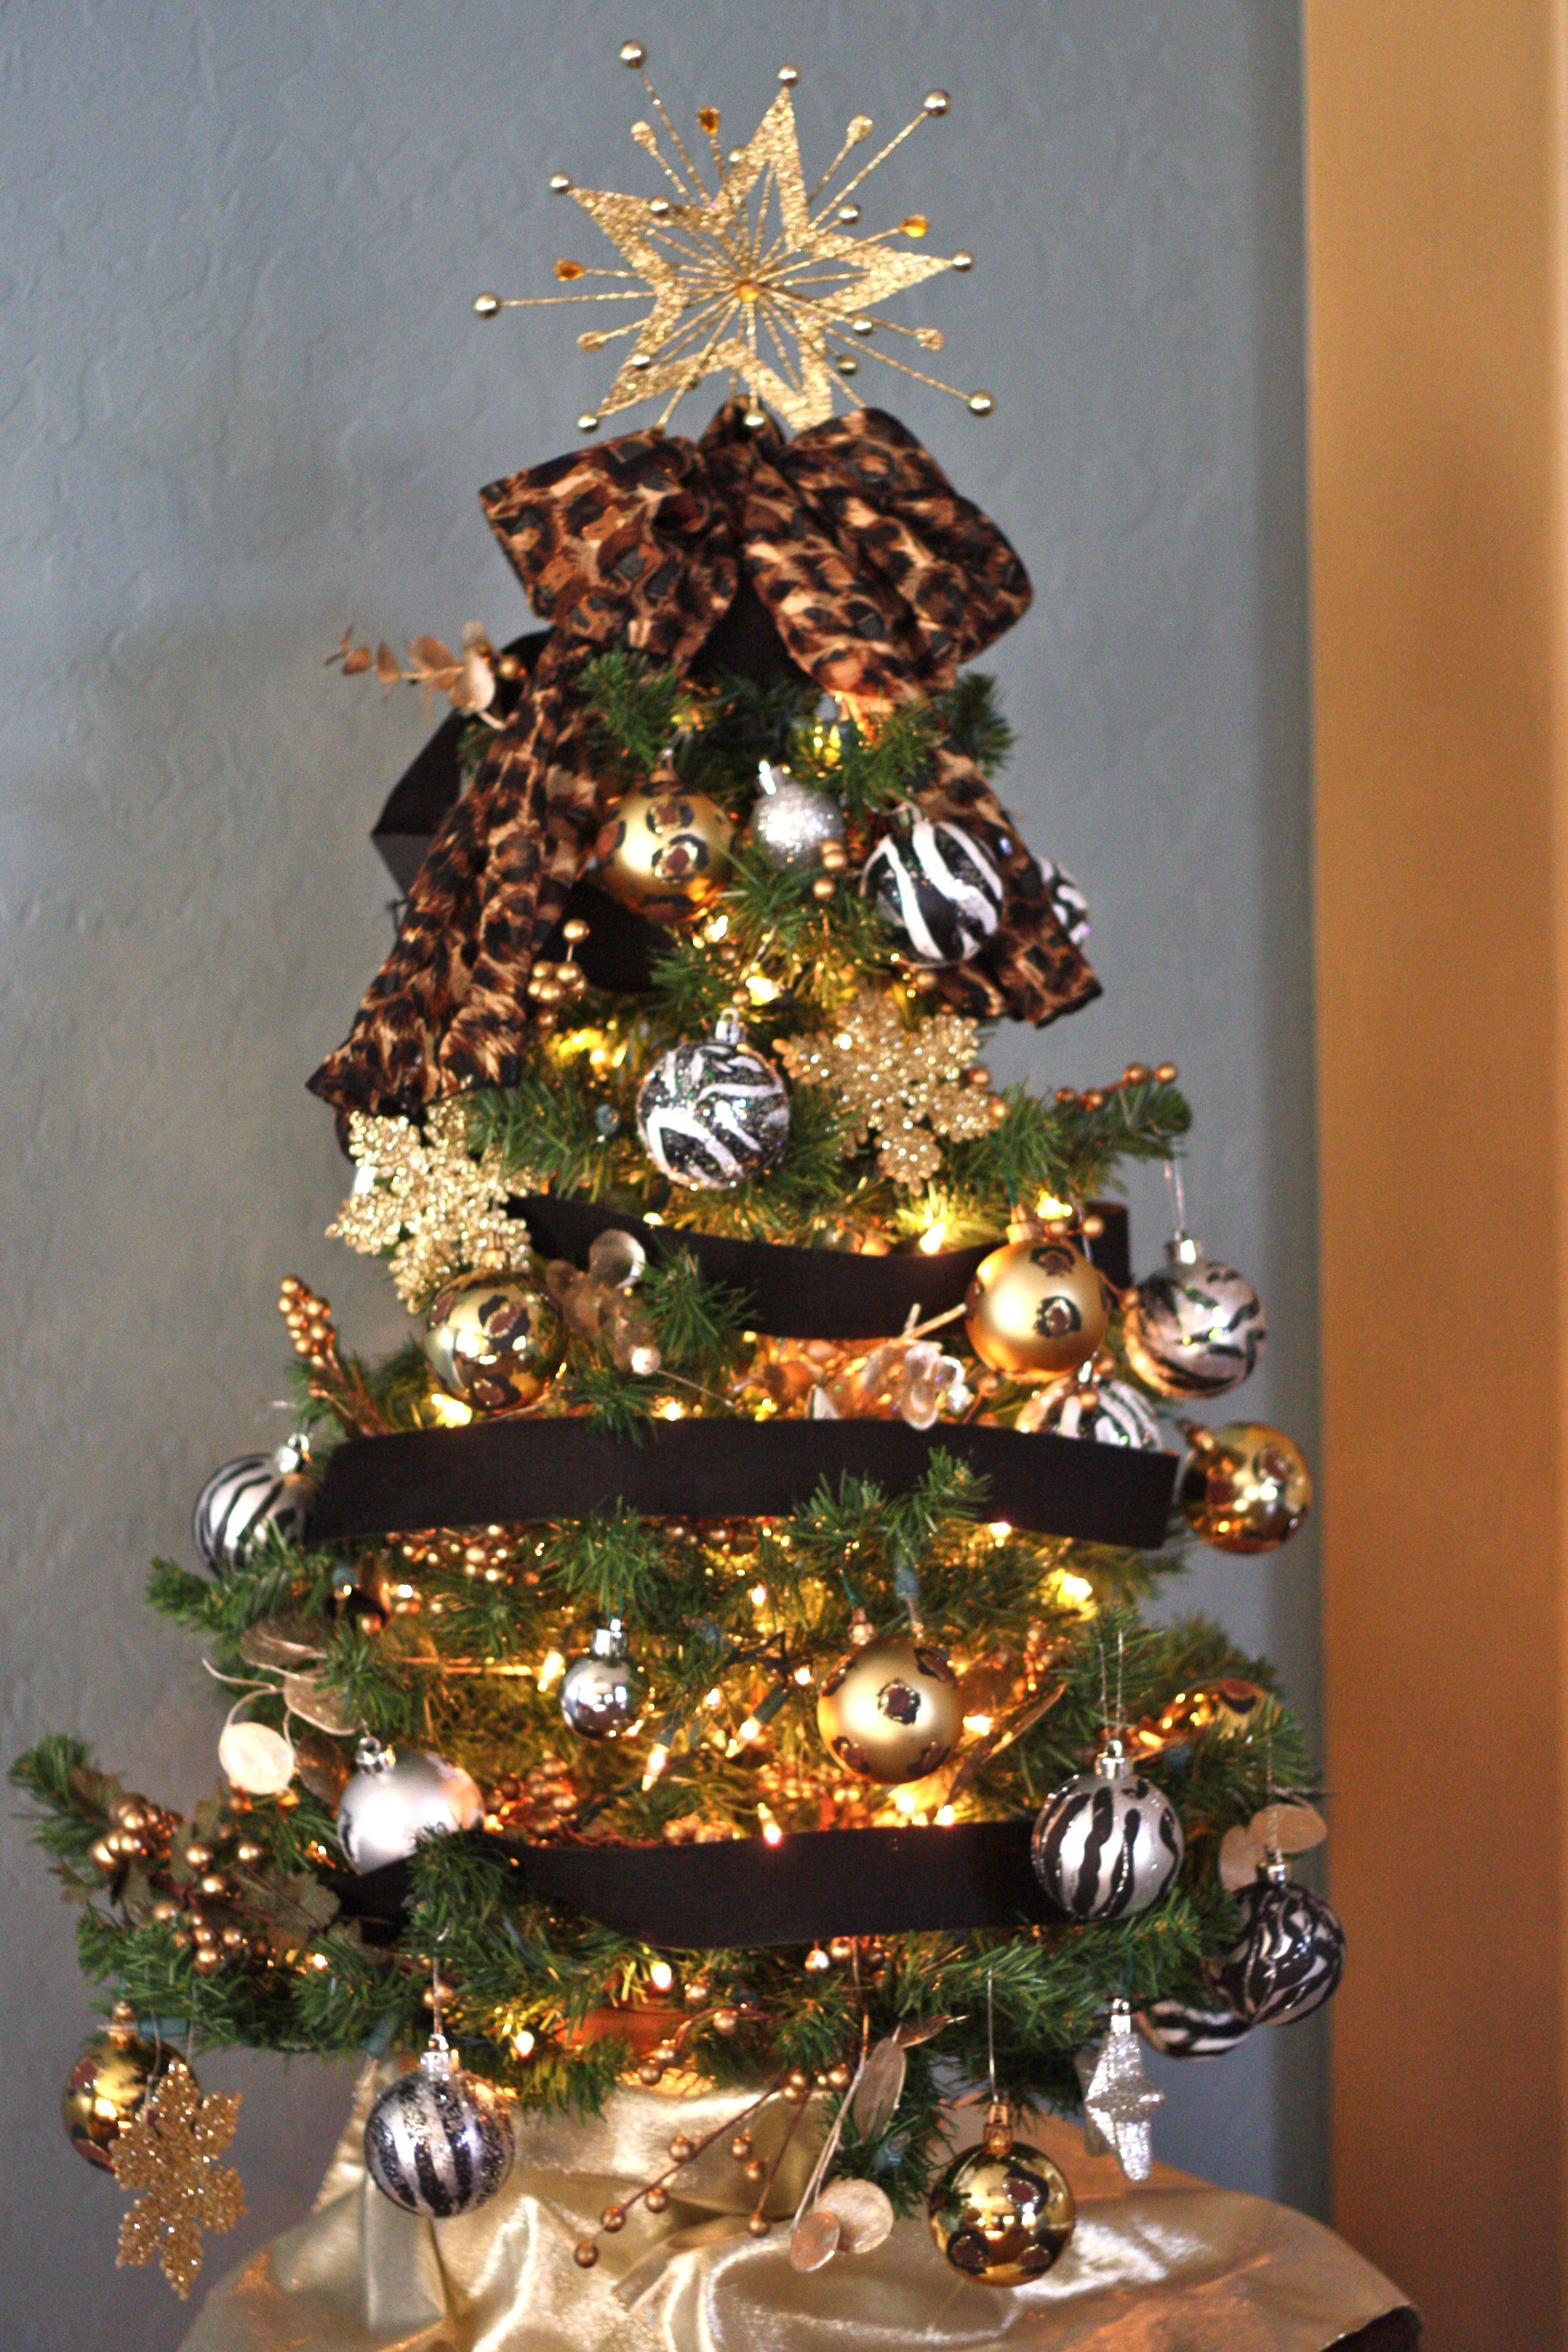 #Animal print inspired #Christmas tree, id do differently.  But like the idea!